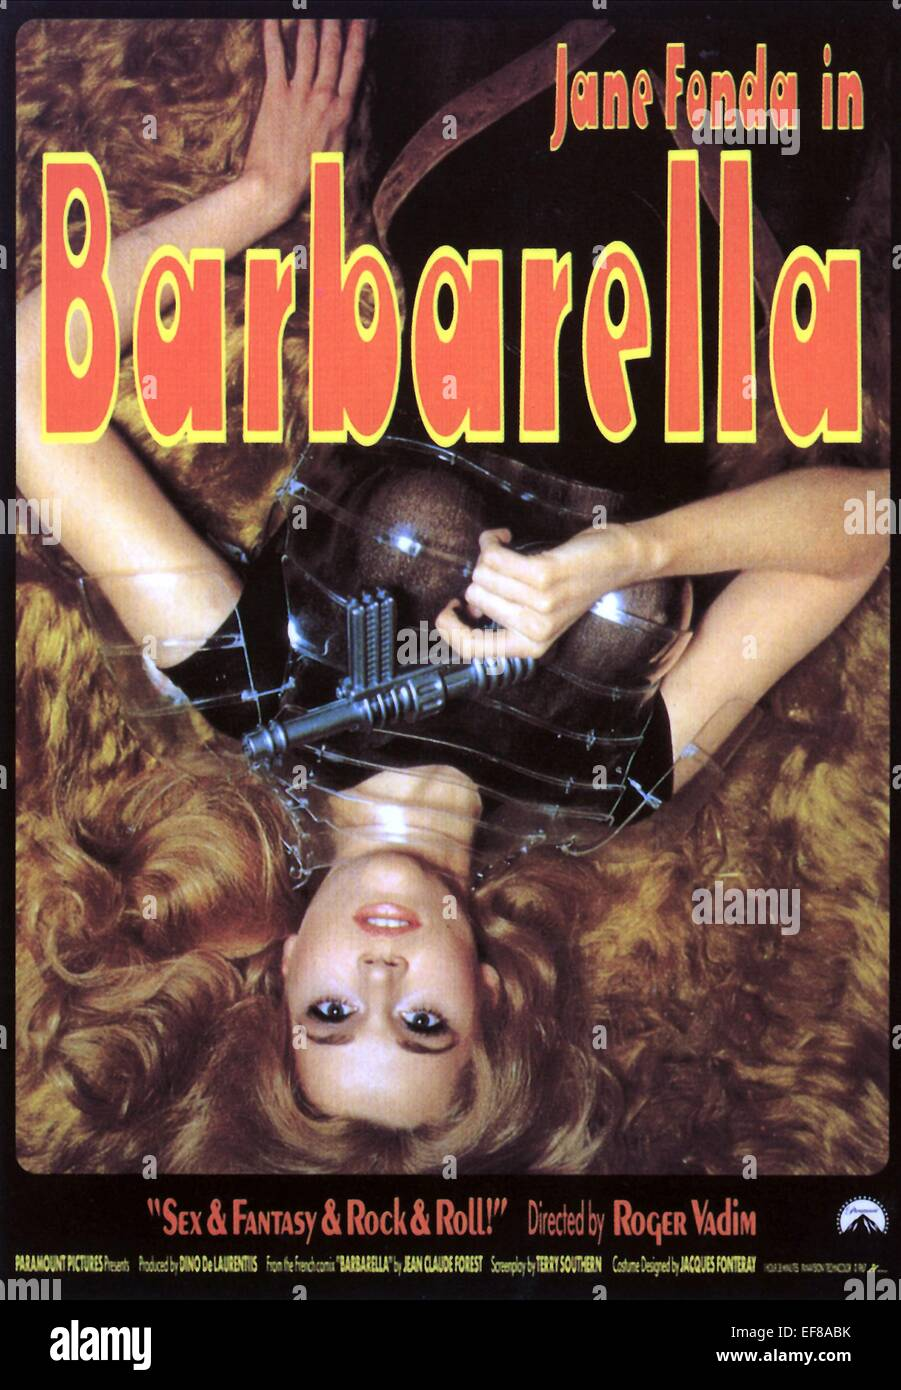 barbarella movie poster - photo #25